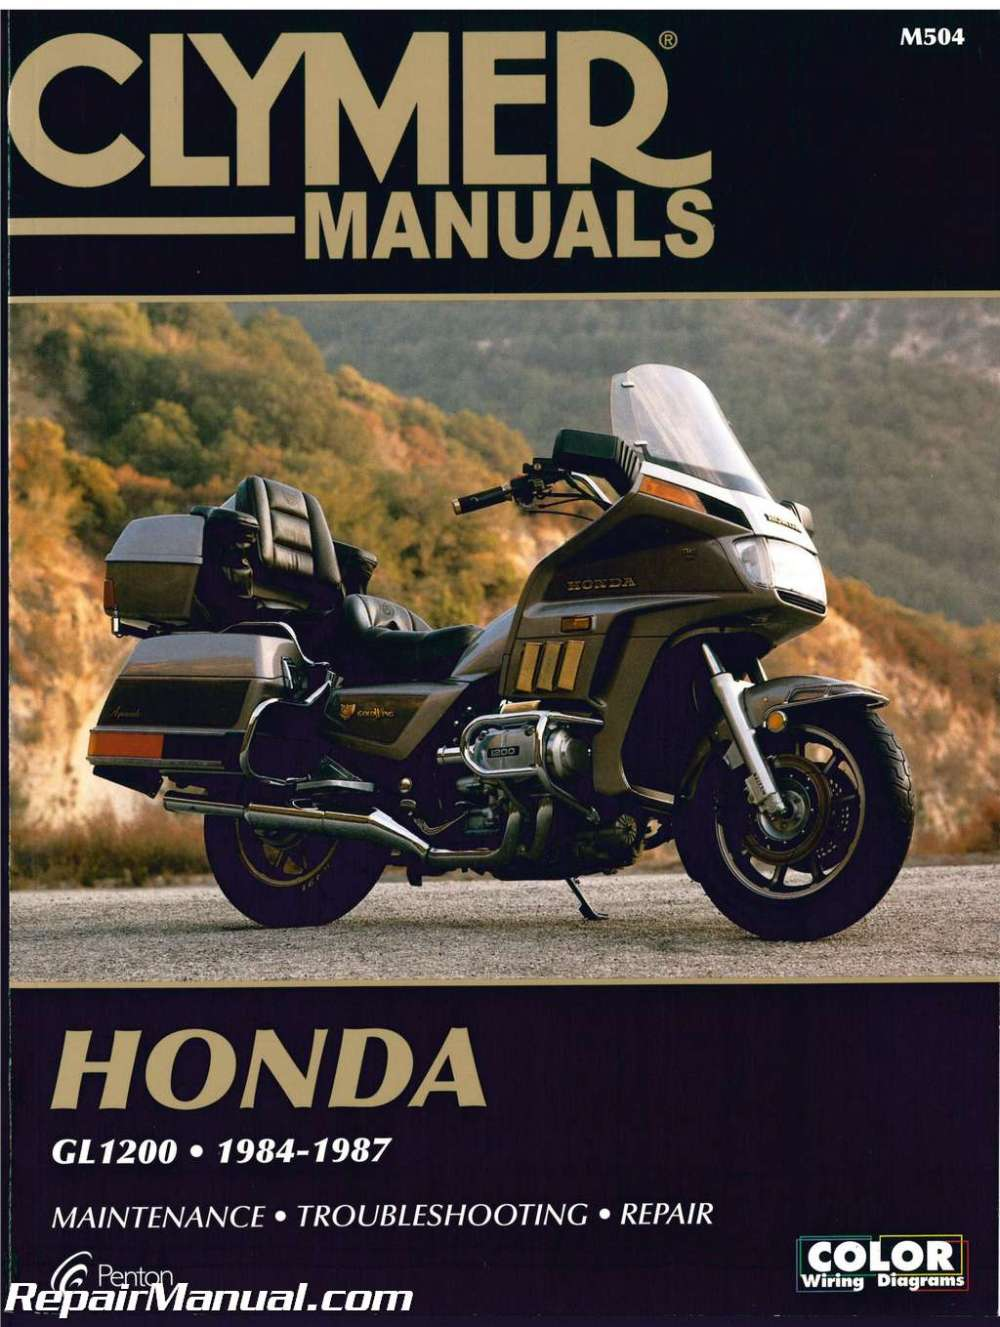 medium resolution of honda gl1200 gold wing motorcycle repair manual 1984 1987 clymer h00990155 as well gl1500 circuit likewise honda goldwing gl1200 wiring diagram